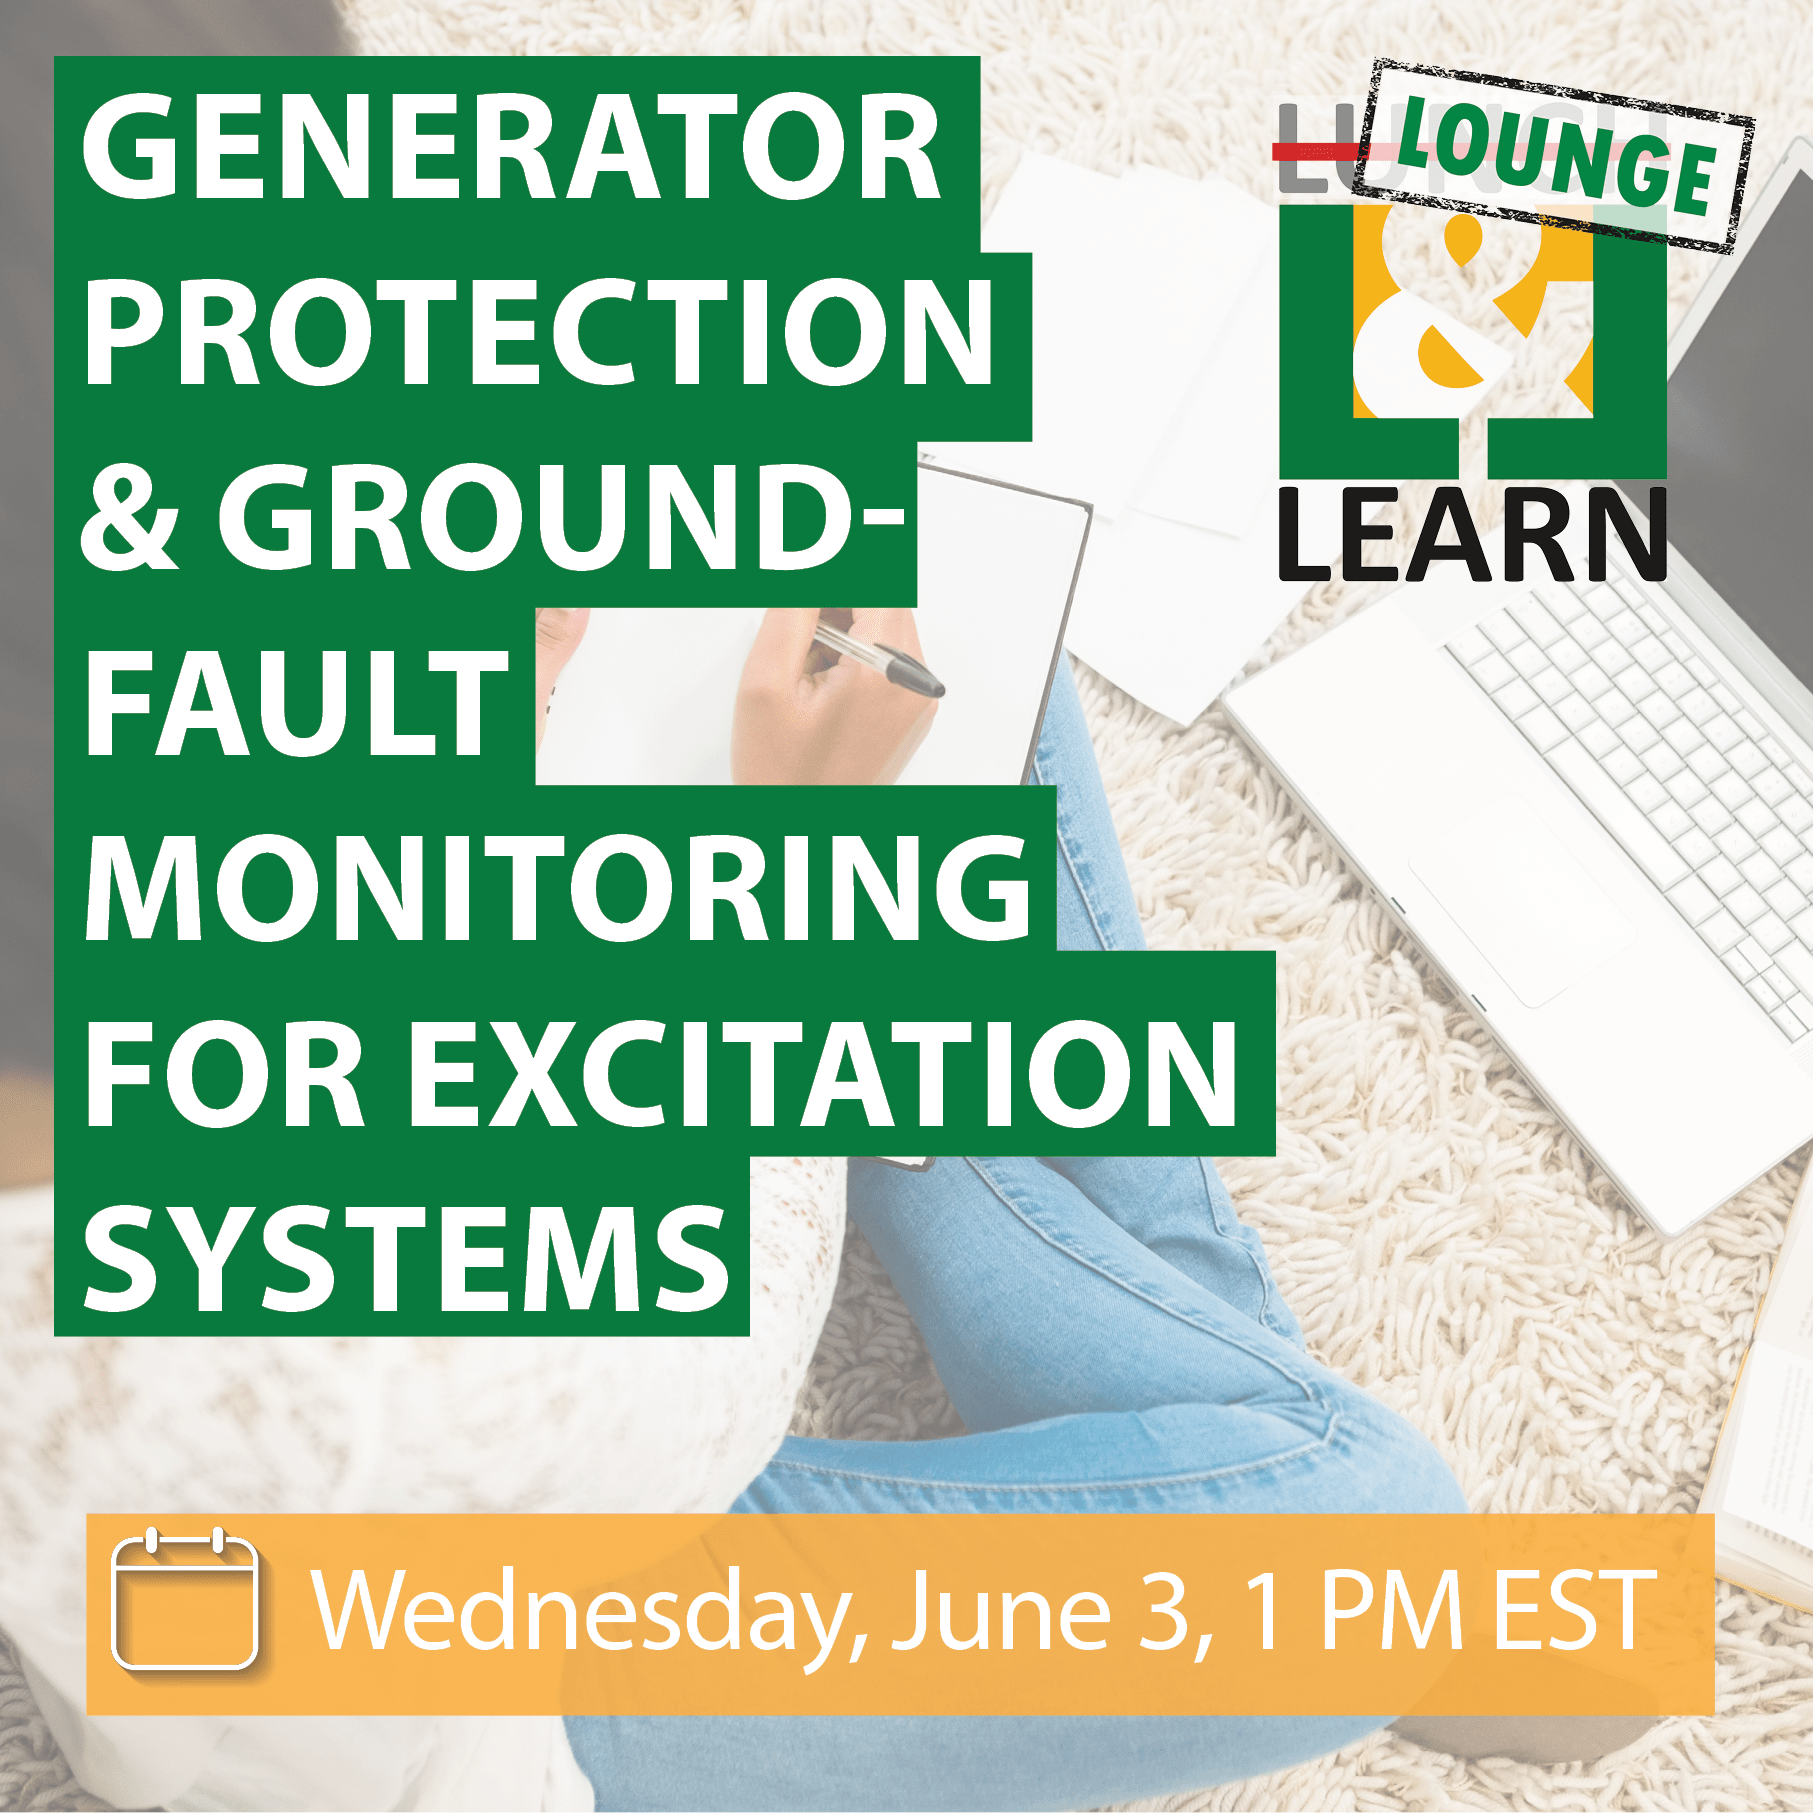 Lounge & Learn: Generator Protection and Ground Fault Monitoring for Excitation Systems